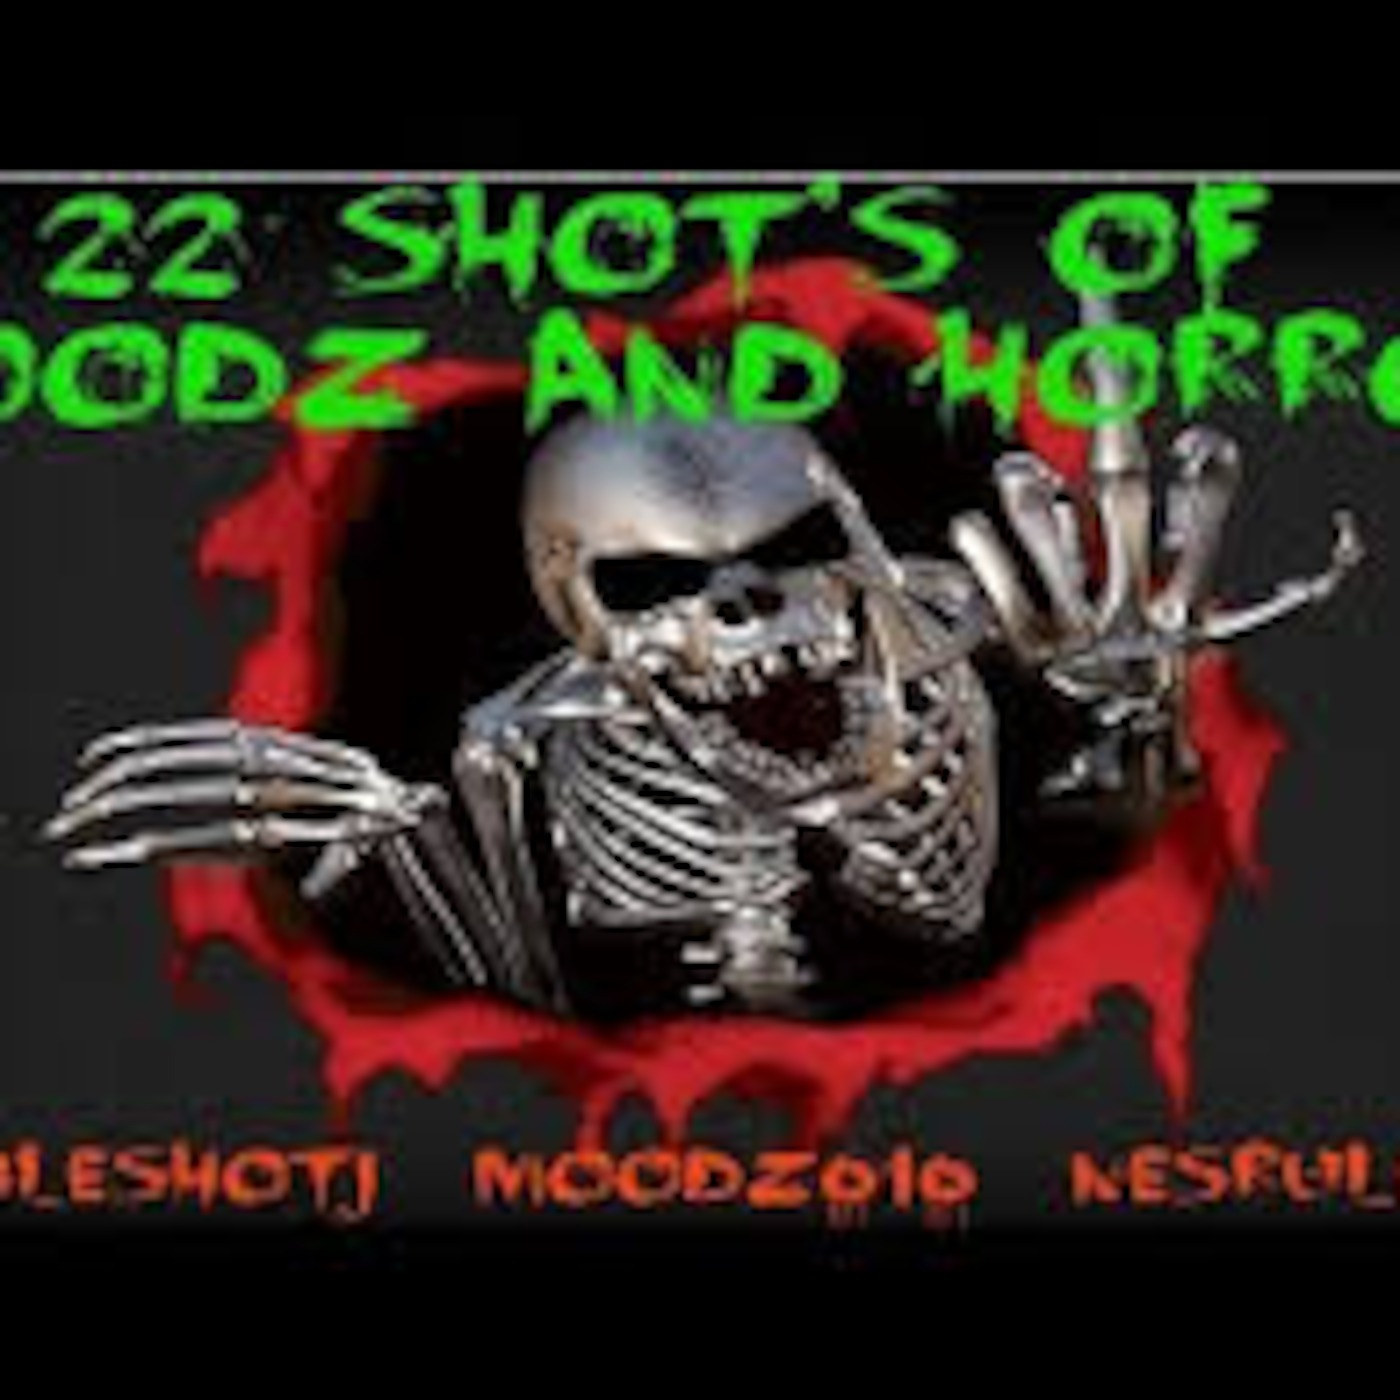 22 Shots Of Moodz And Horror Podcast